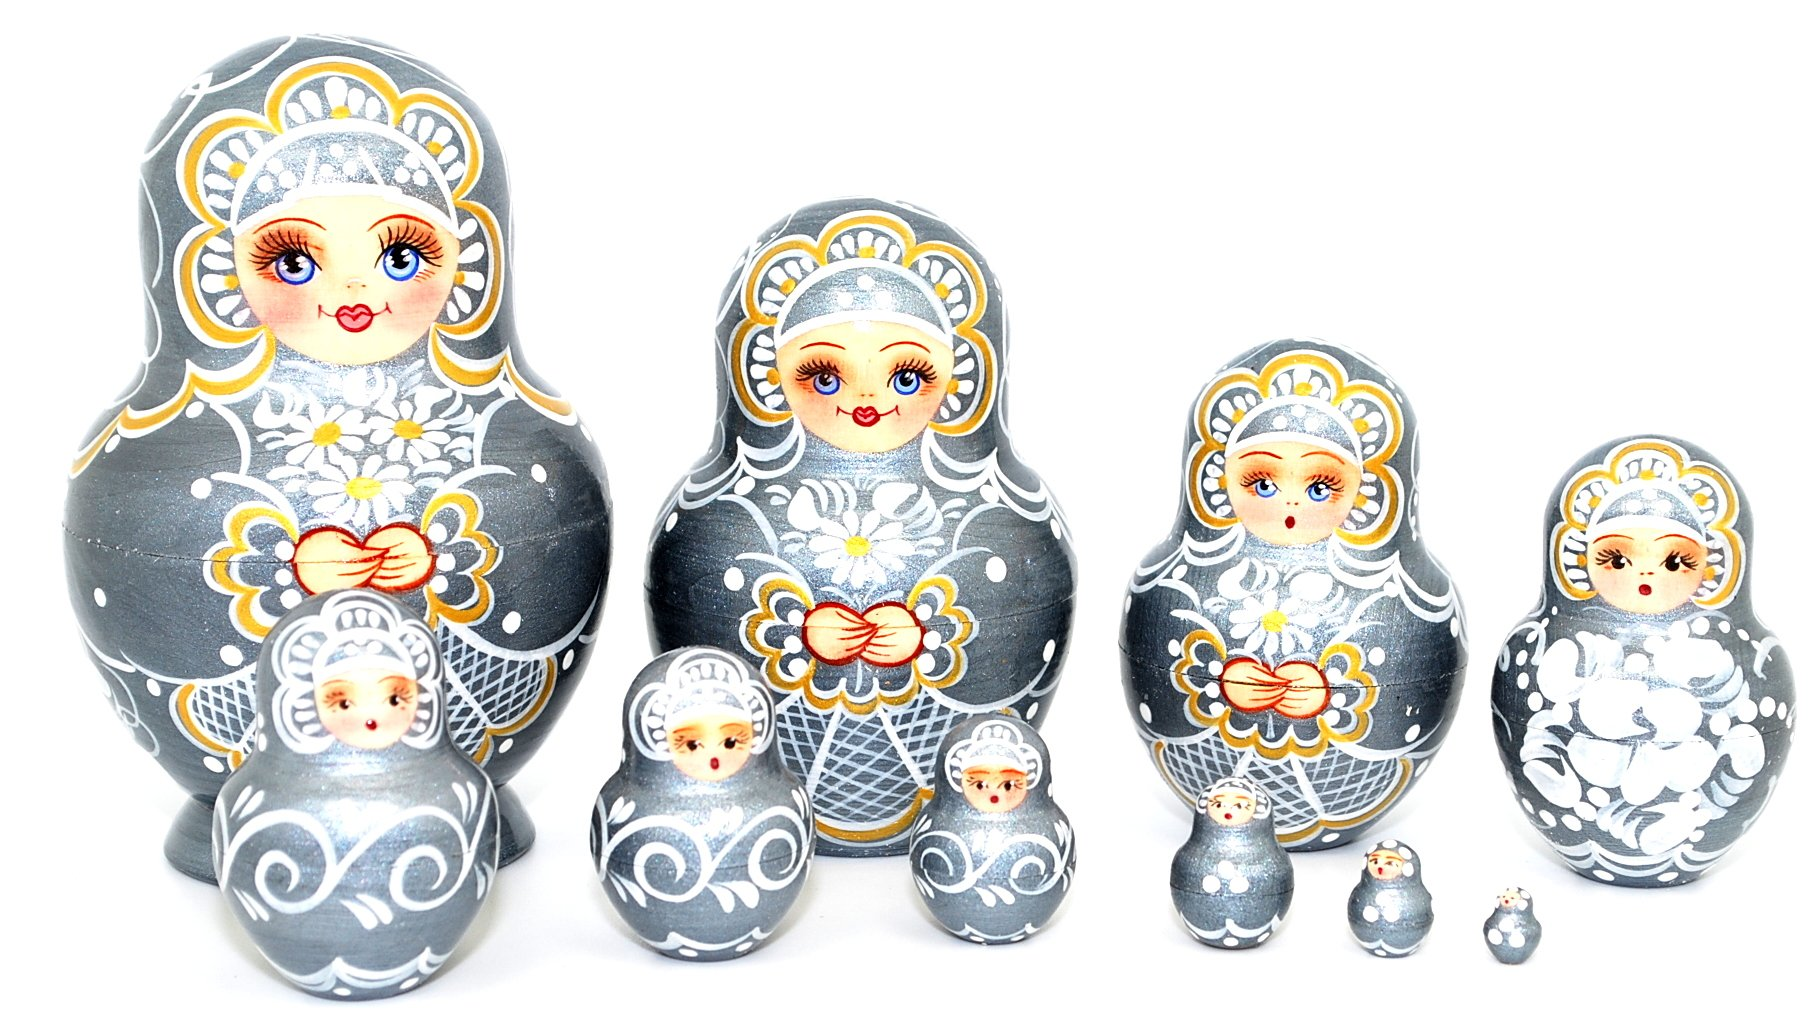 Unique Russian Hand Painted Handmade Silver Nesting Dolls Set of 10 Pcs Floral Artist Signed by GSZ (Image #5)